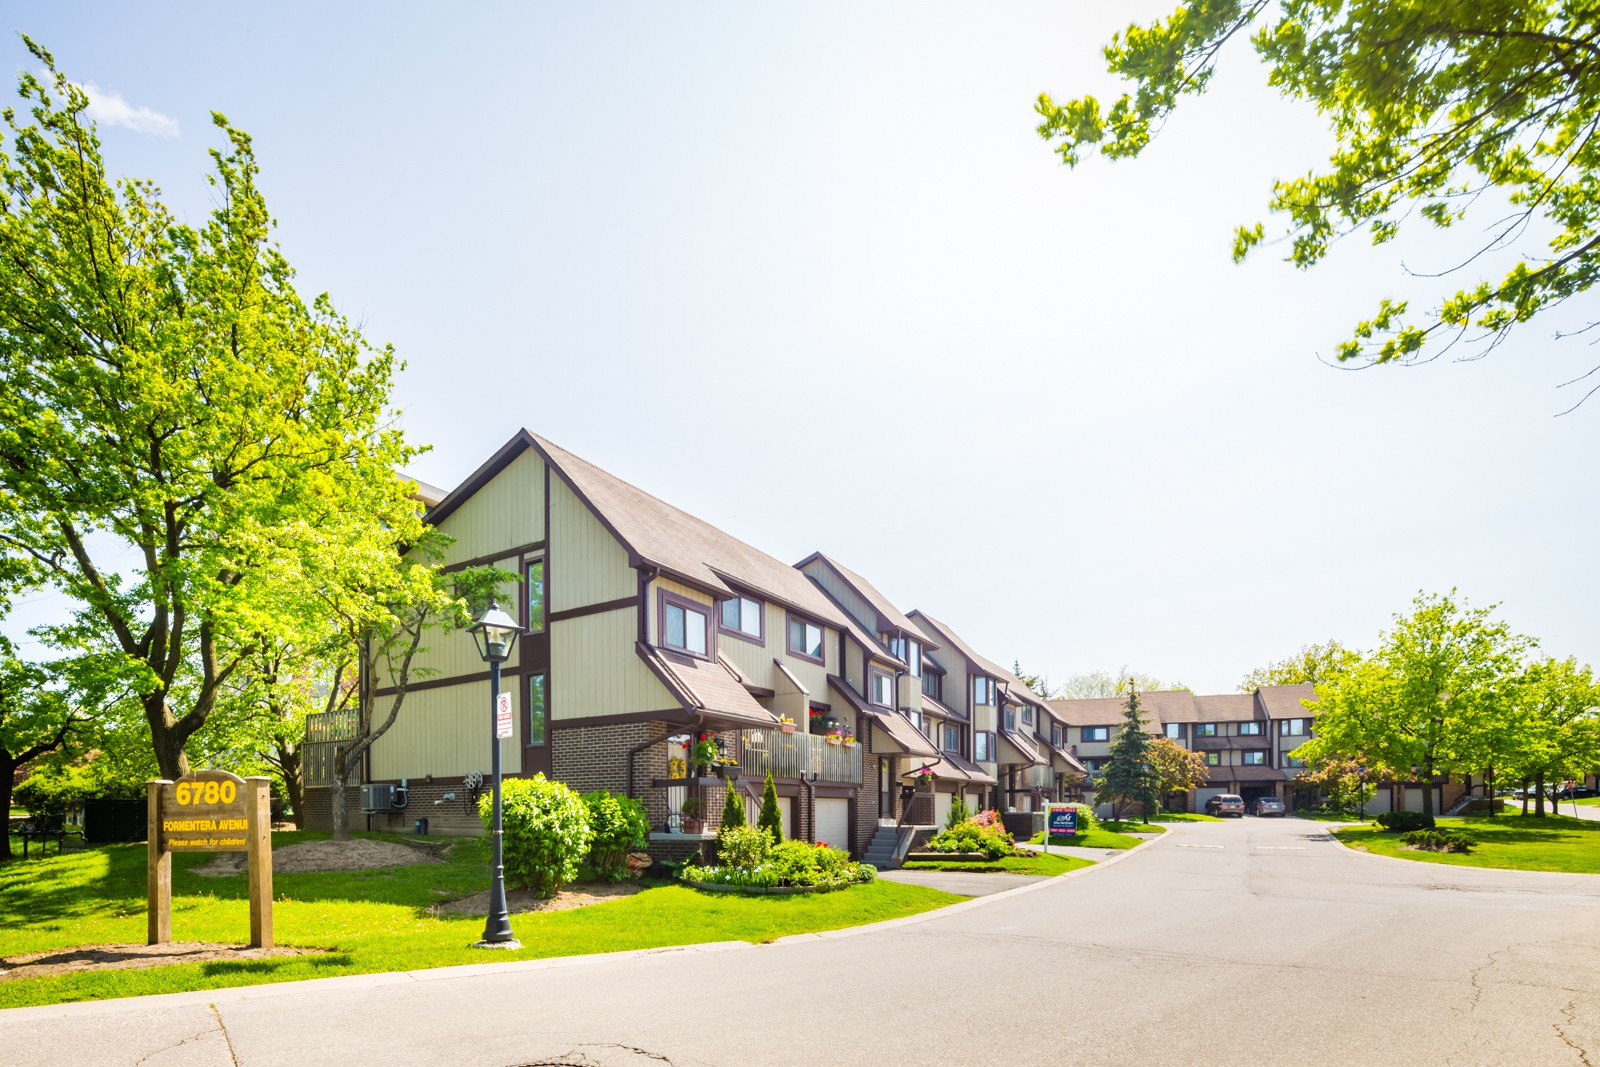 6780 Formentera Avenue Townhouses at 6780 Formentera Ave, Mississauga 0